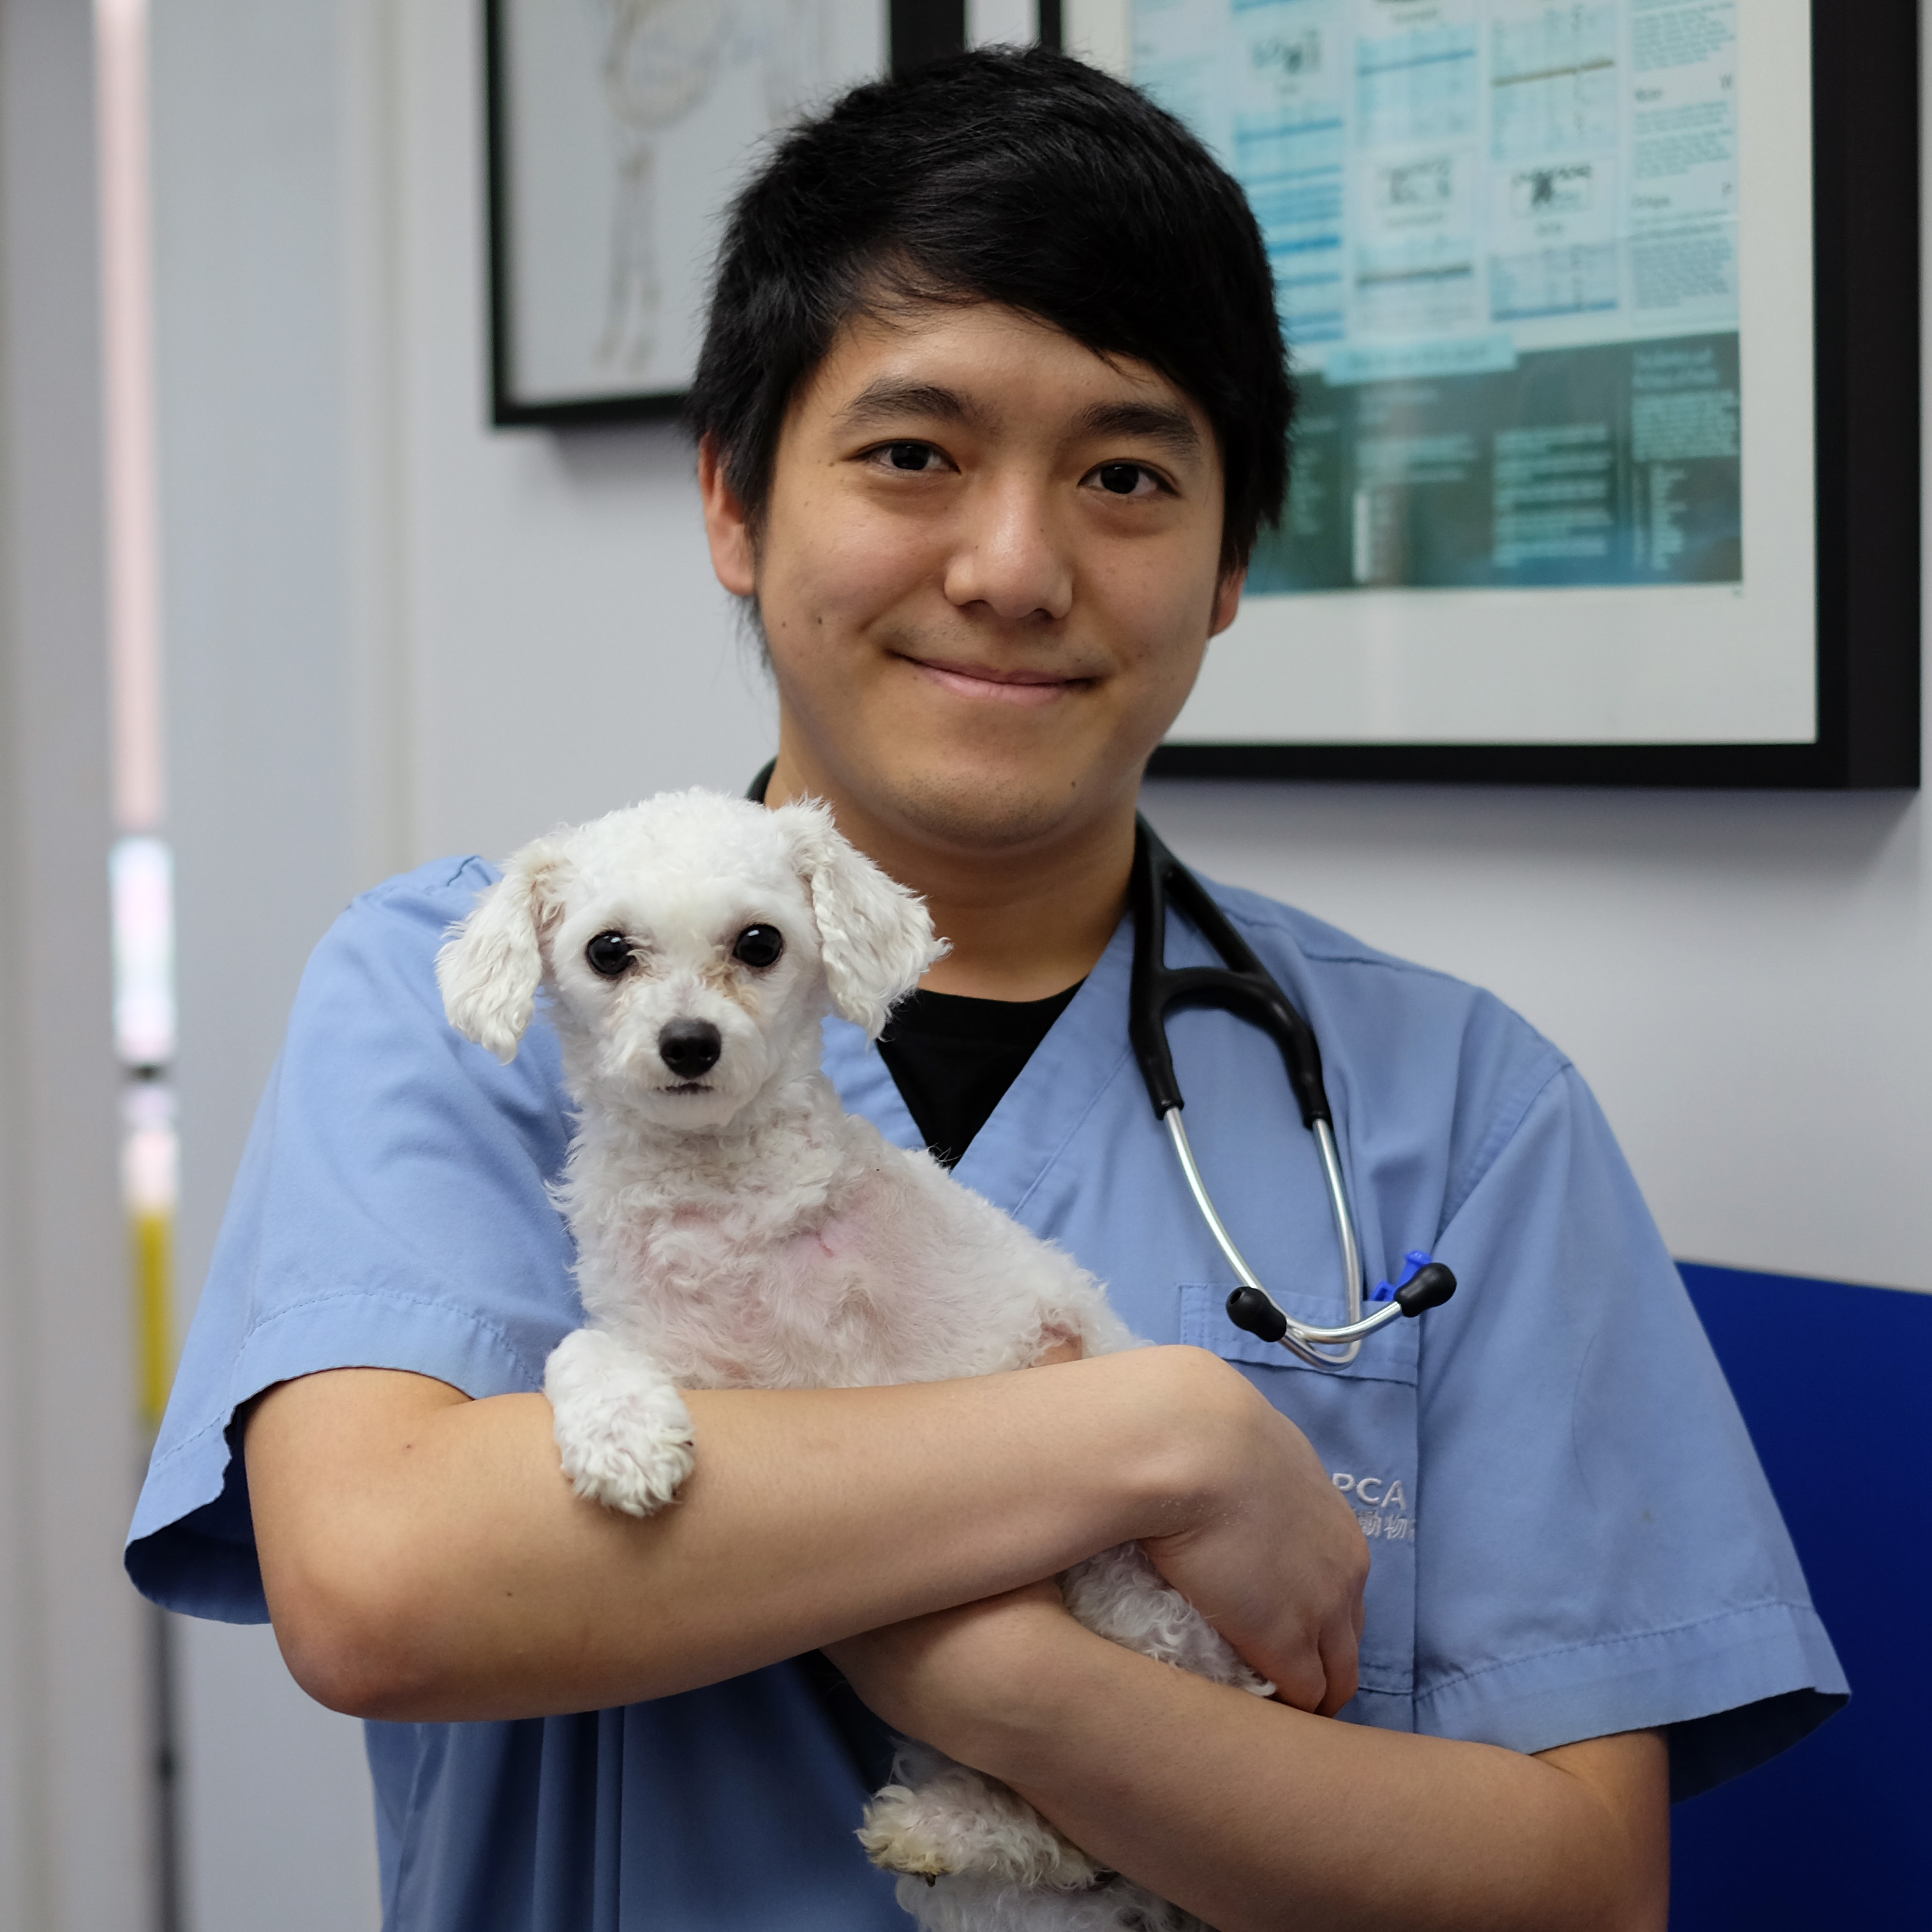 Dr. Howie Wong